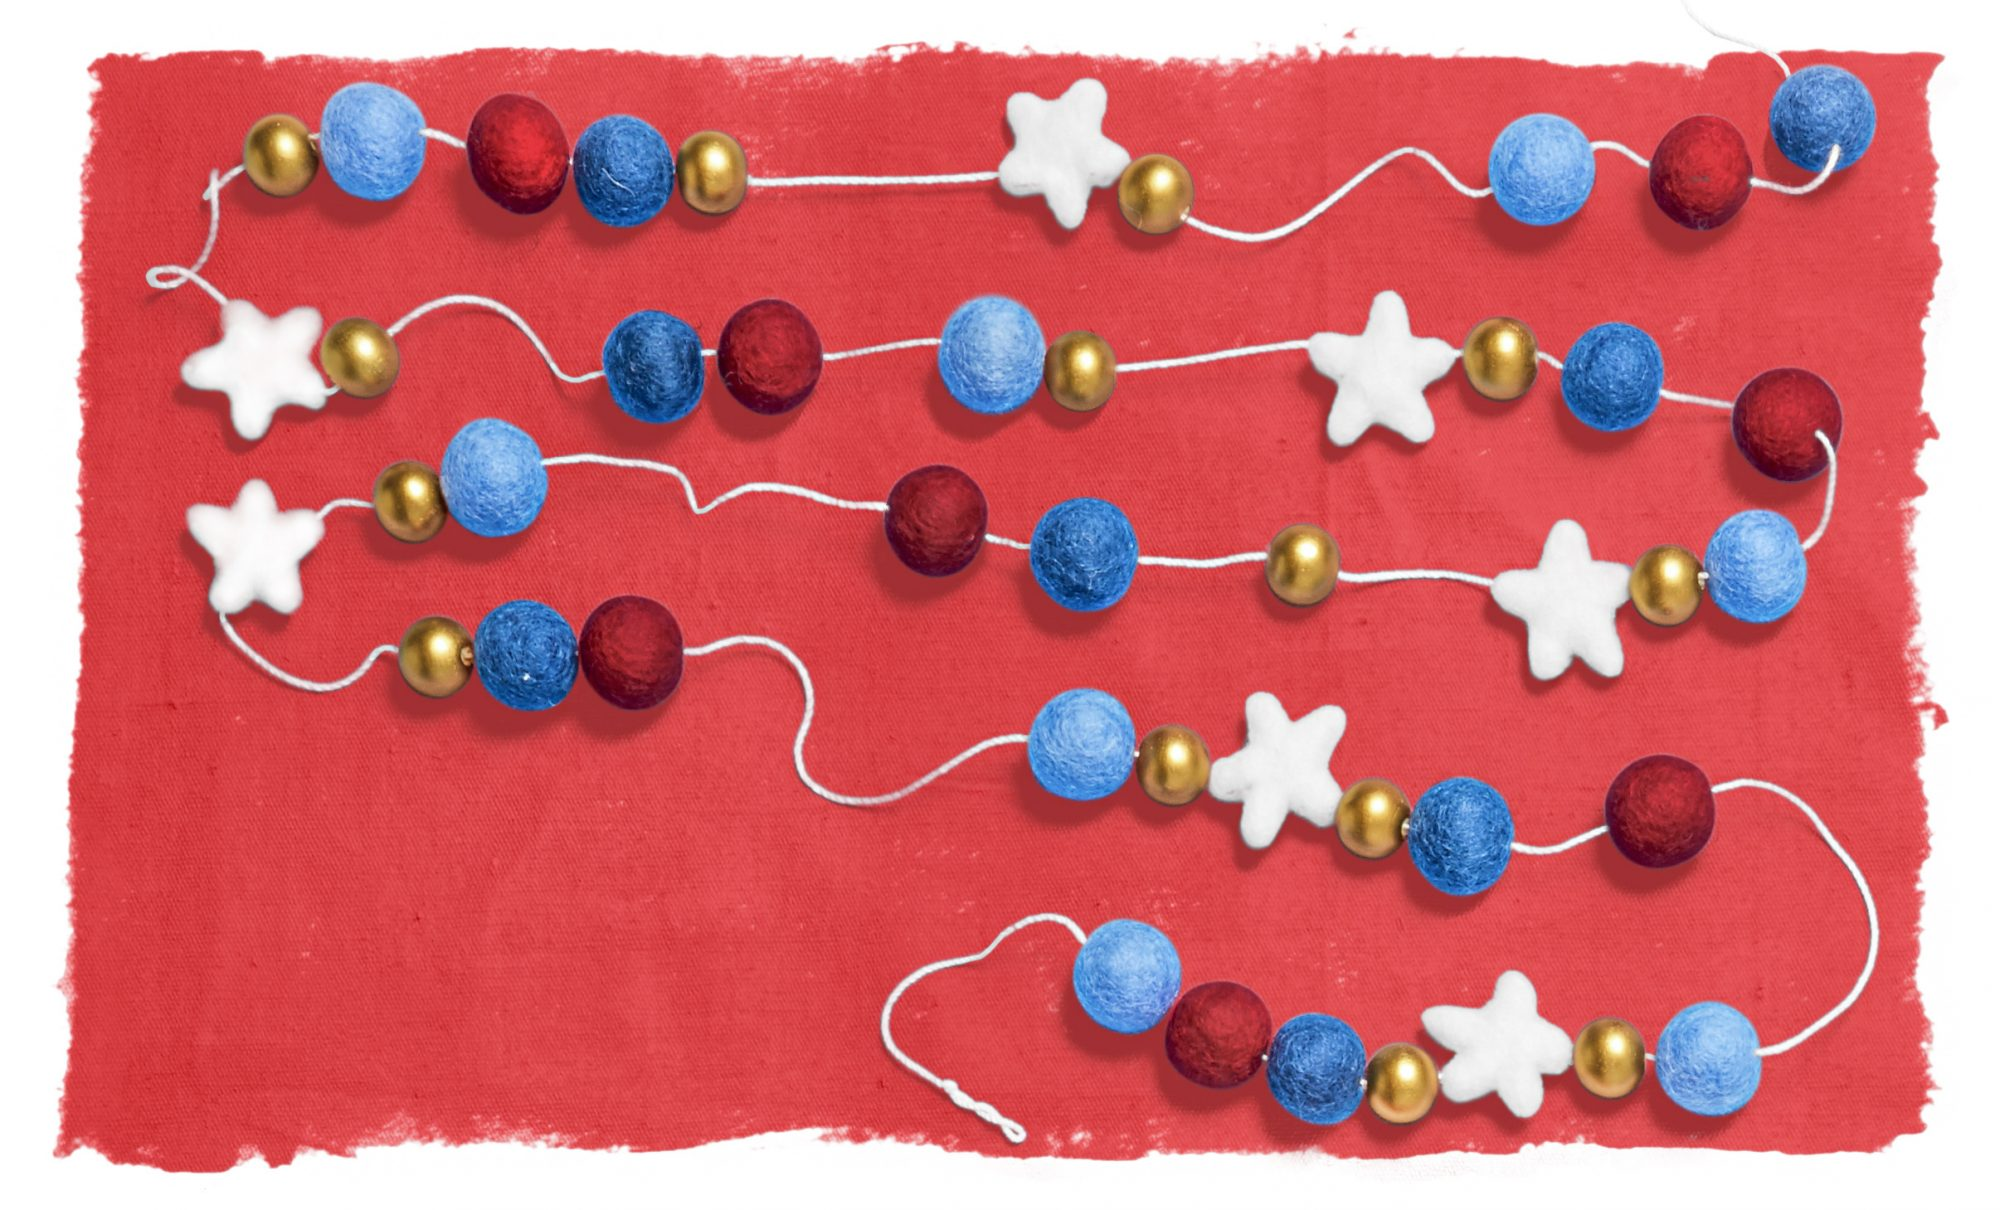 stars and stripes garland on red